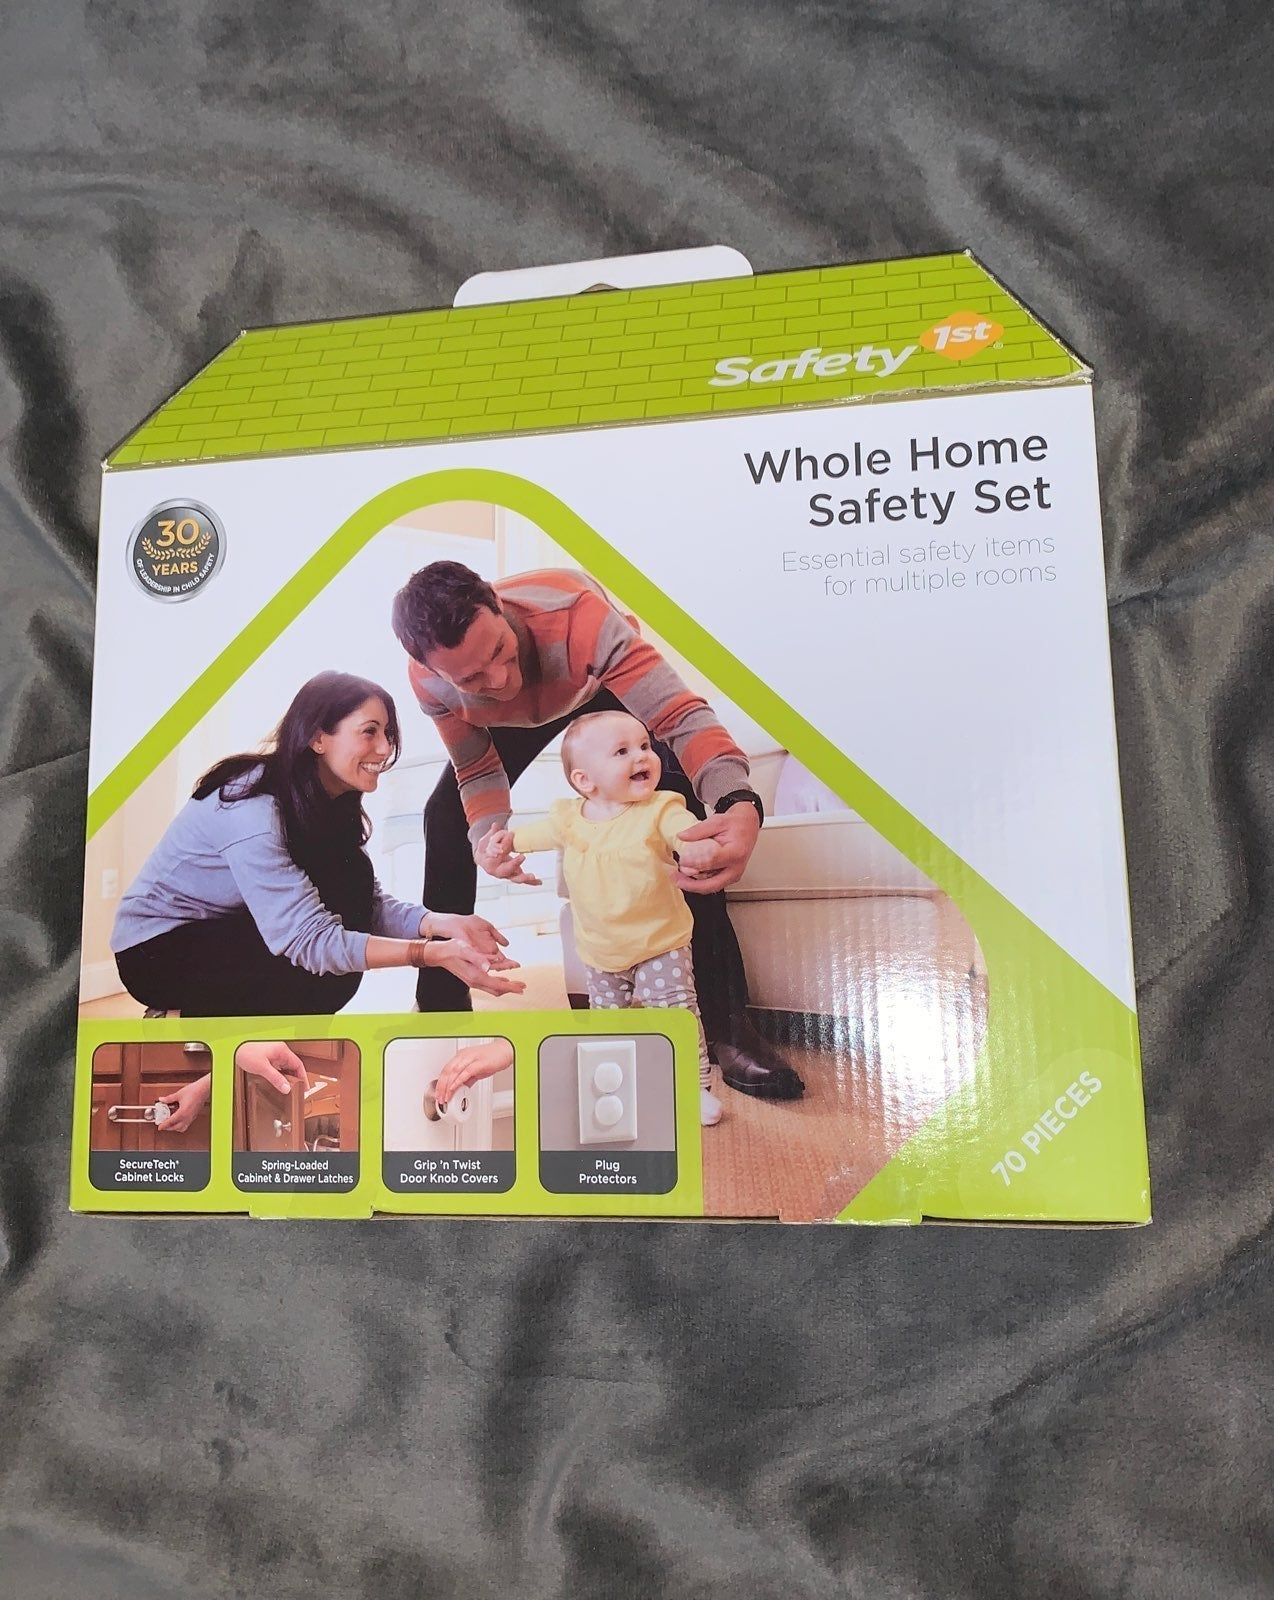 Whole home safety set